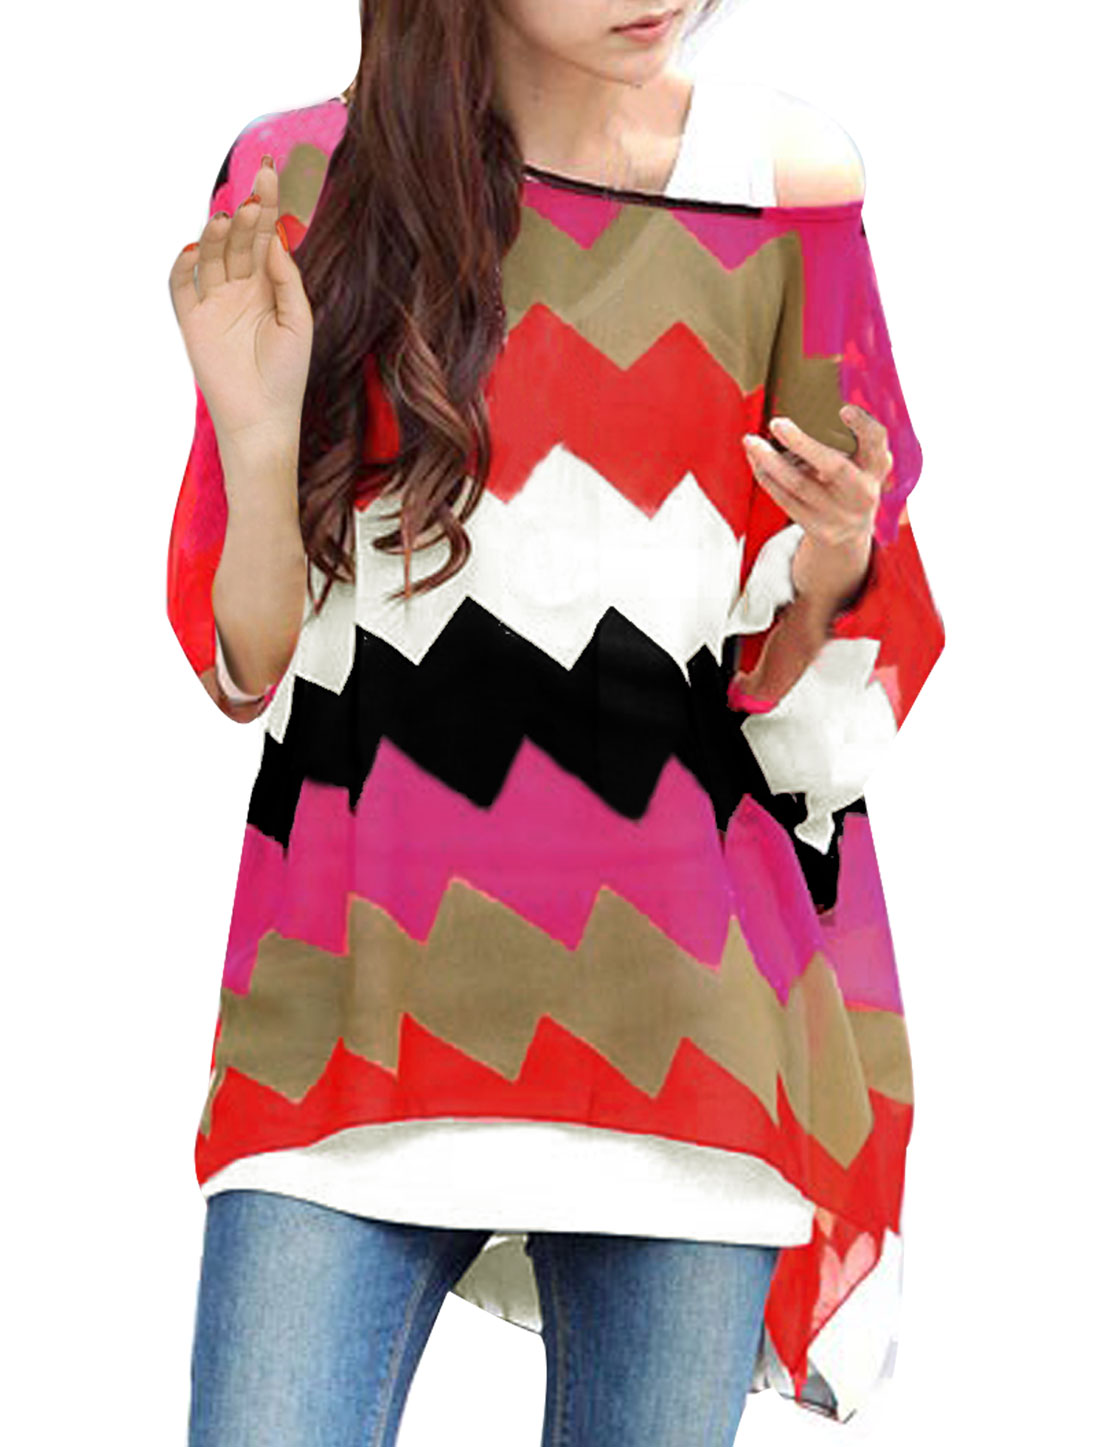 Ladies Round Neck Batwing Sleeve Color Block Pullover Blouse L Fuchsia Black